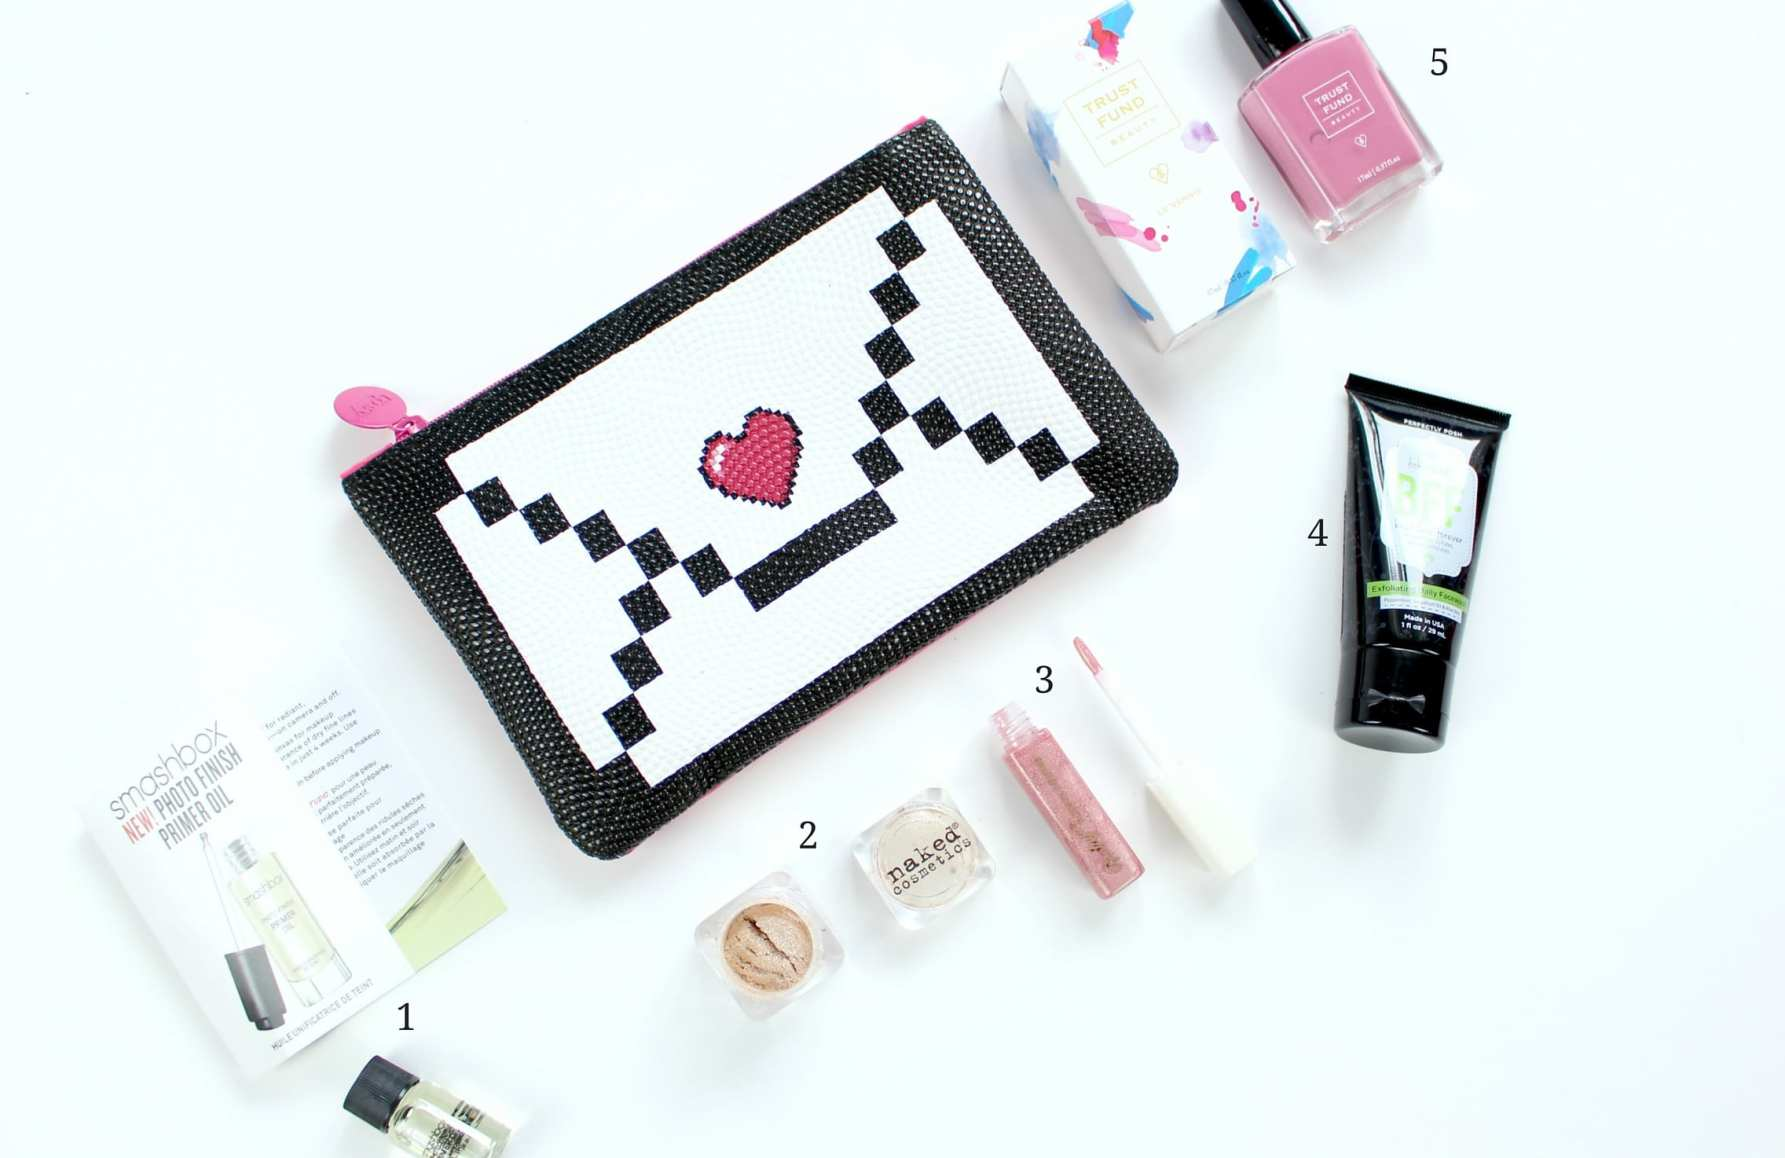 February's Ipsy Glam Bag Review of Trust Fund Beauty nail polish, Perfectly Posh BFF face wash, Naked Cosmetics mica pigment, Smashbox Cosmetics primer oil, and Vintage lipgloss.